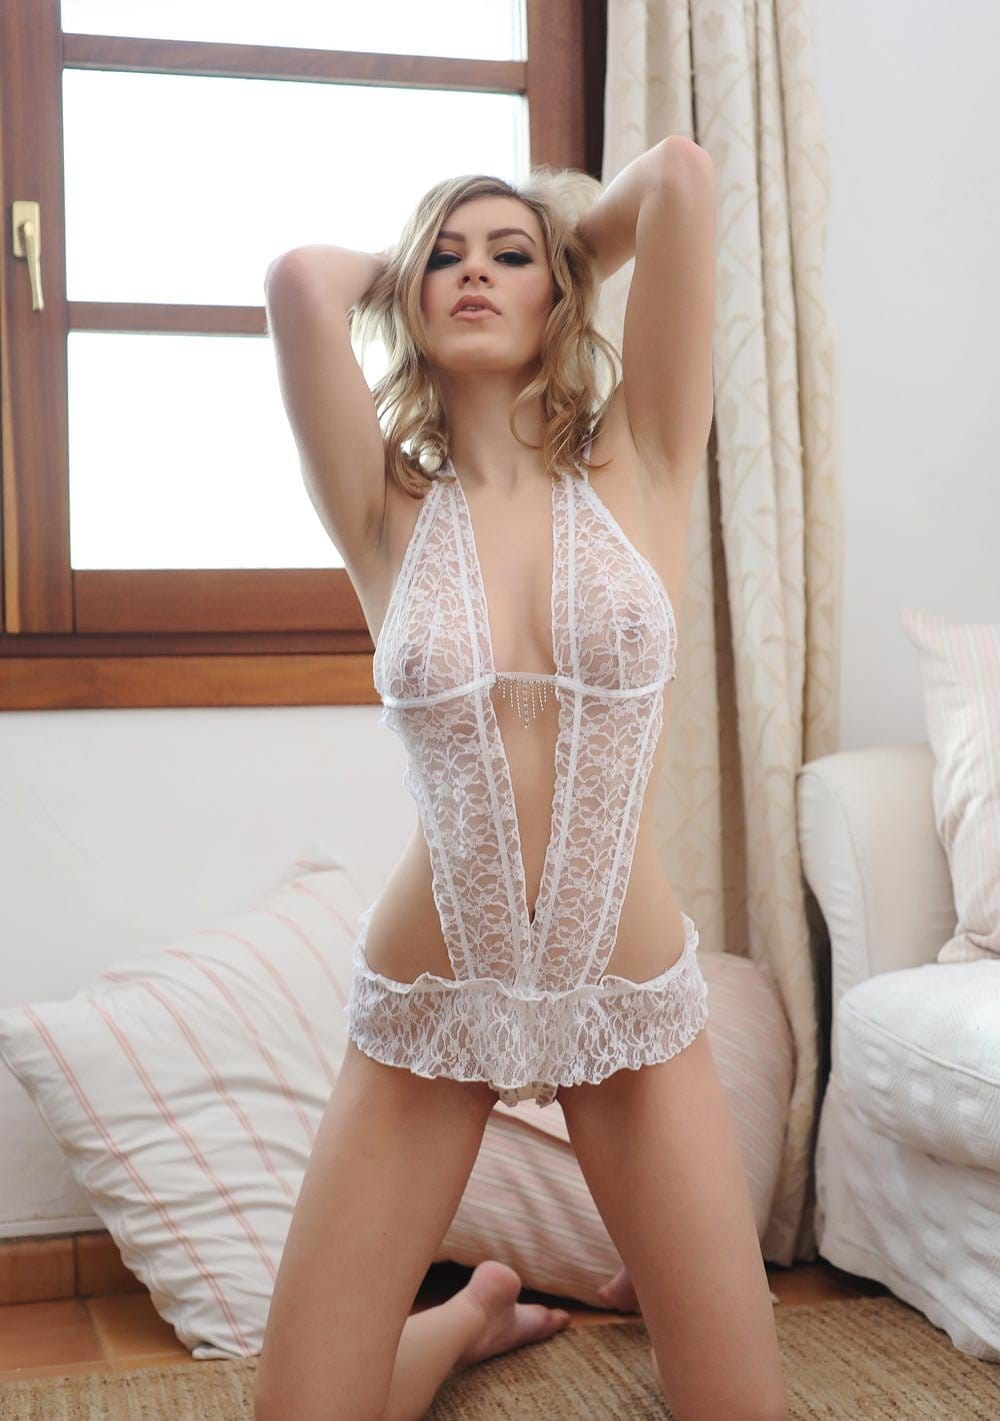 summer-st-claire-sheer-white-lace